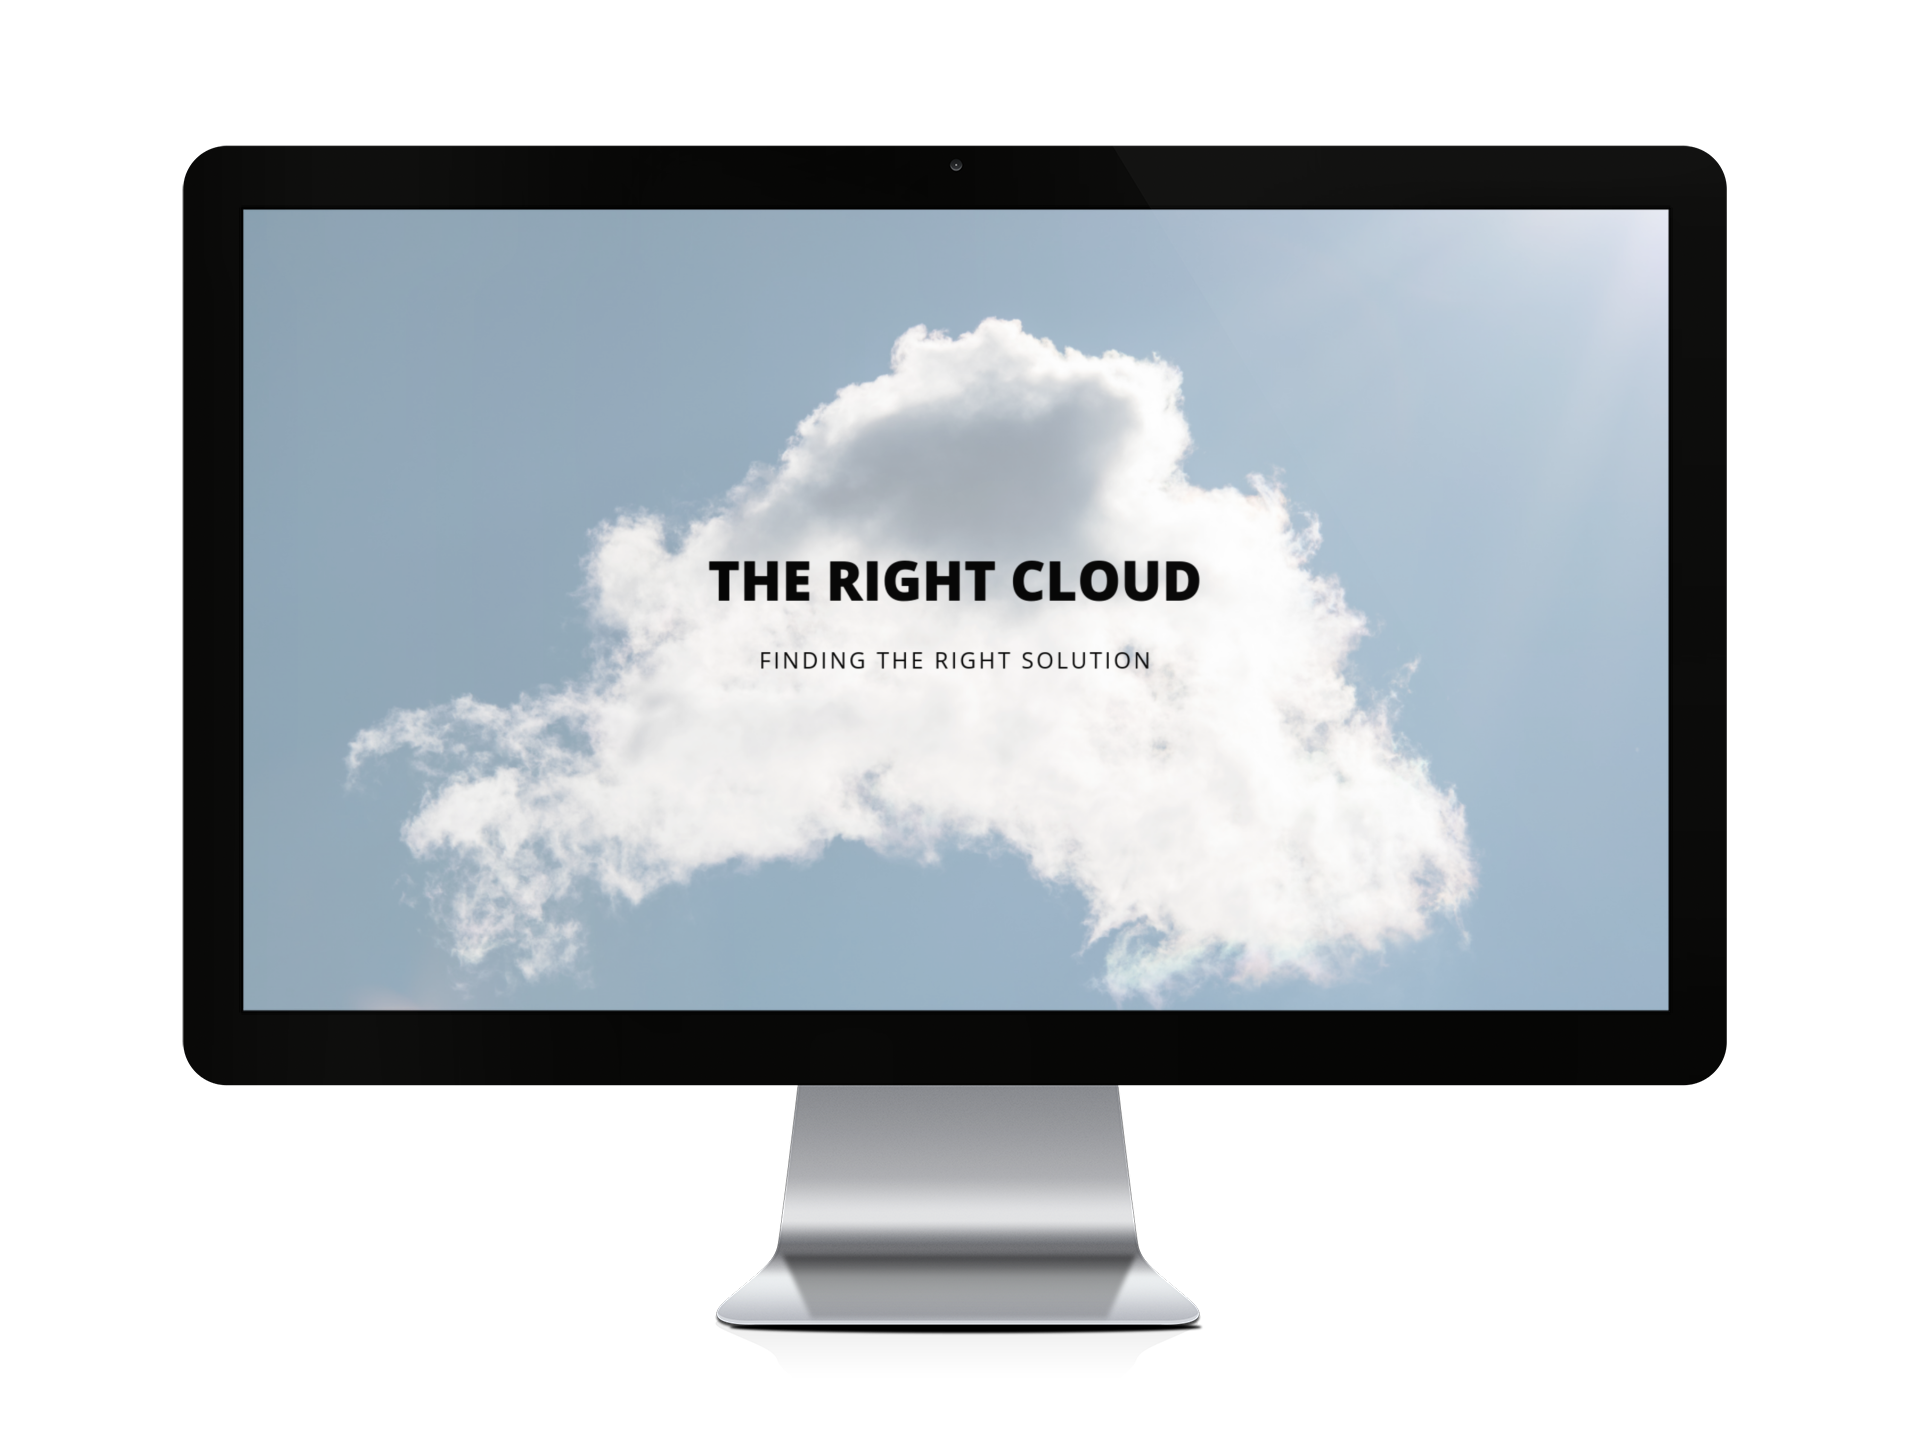 Right cloud